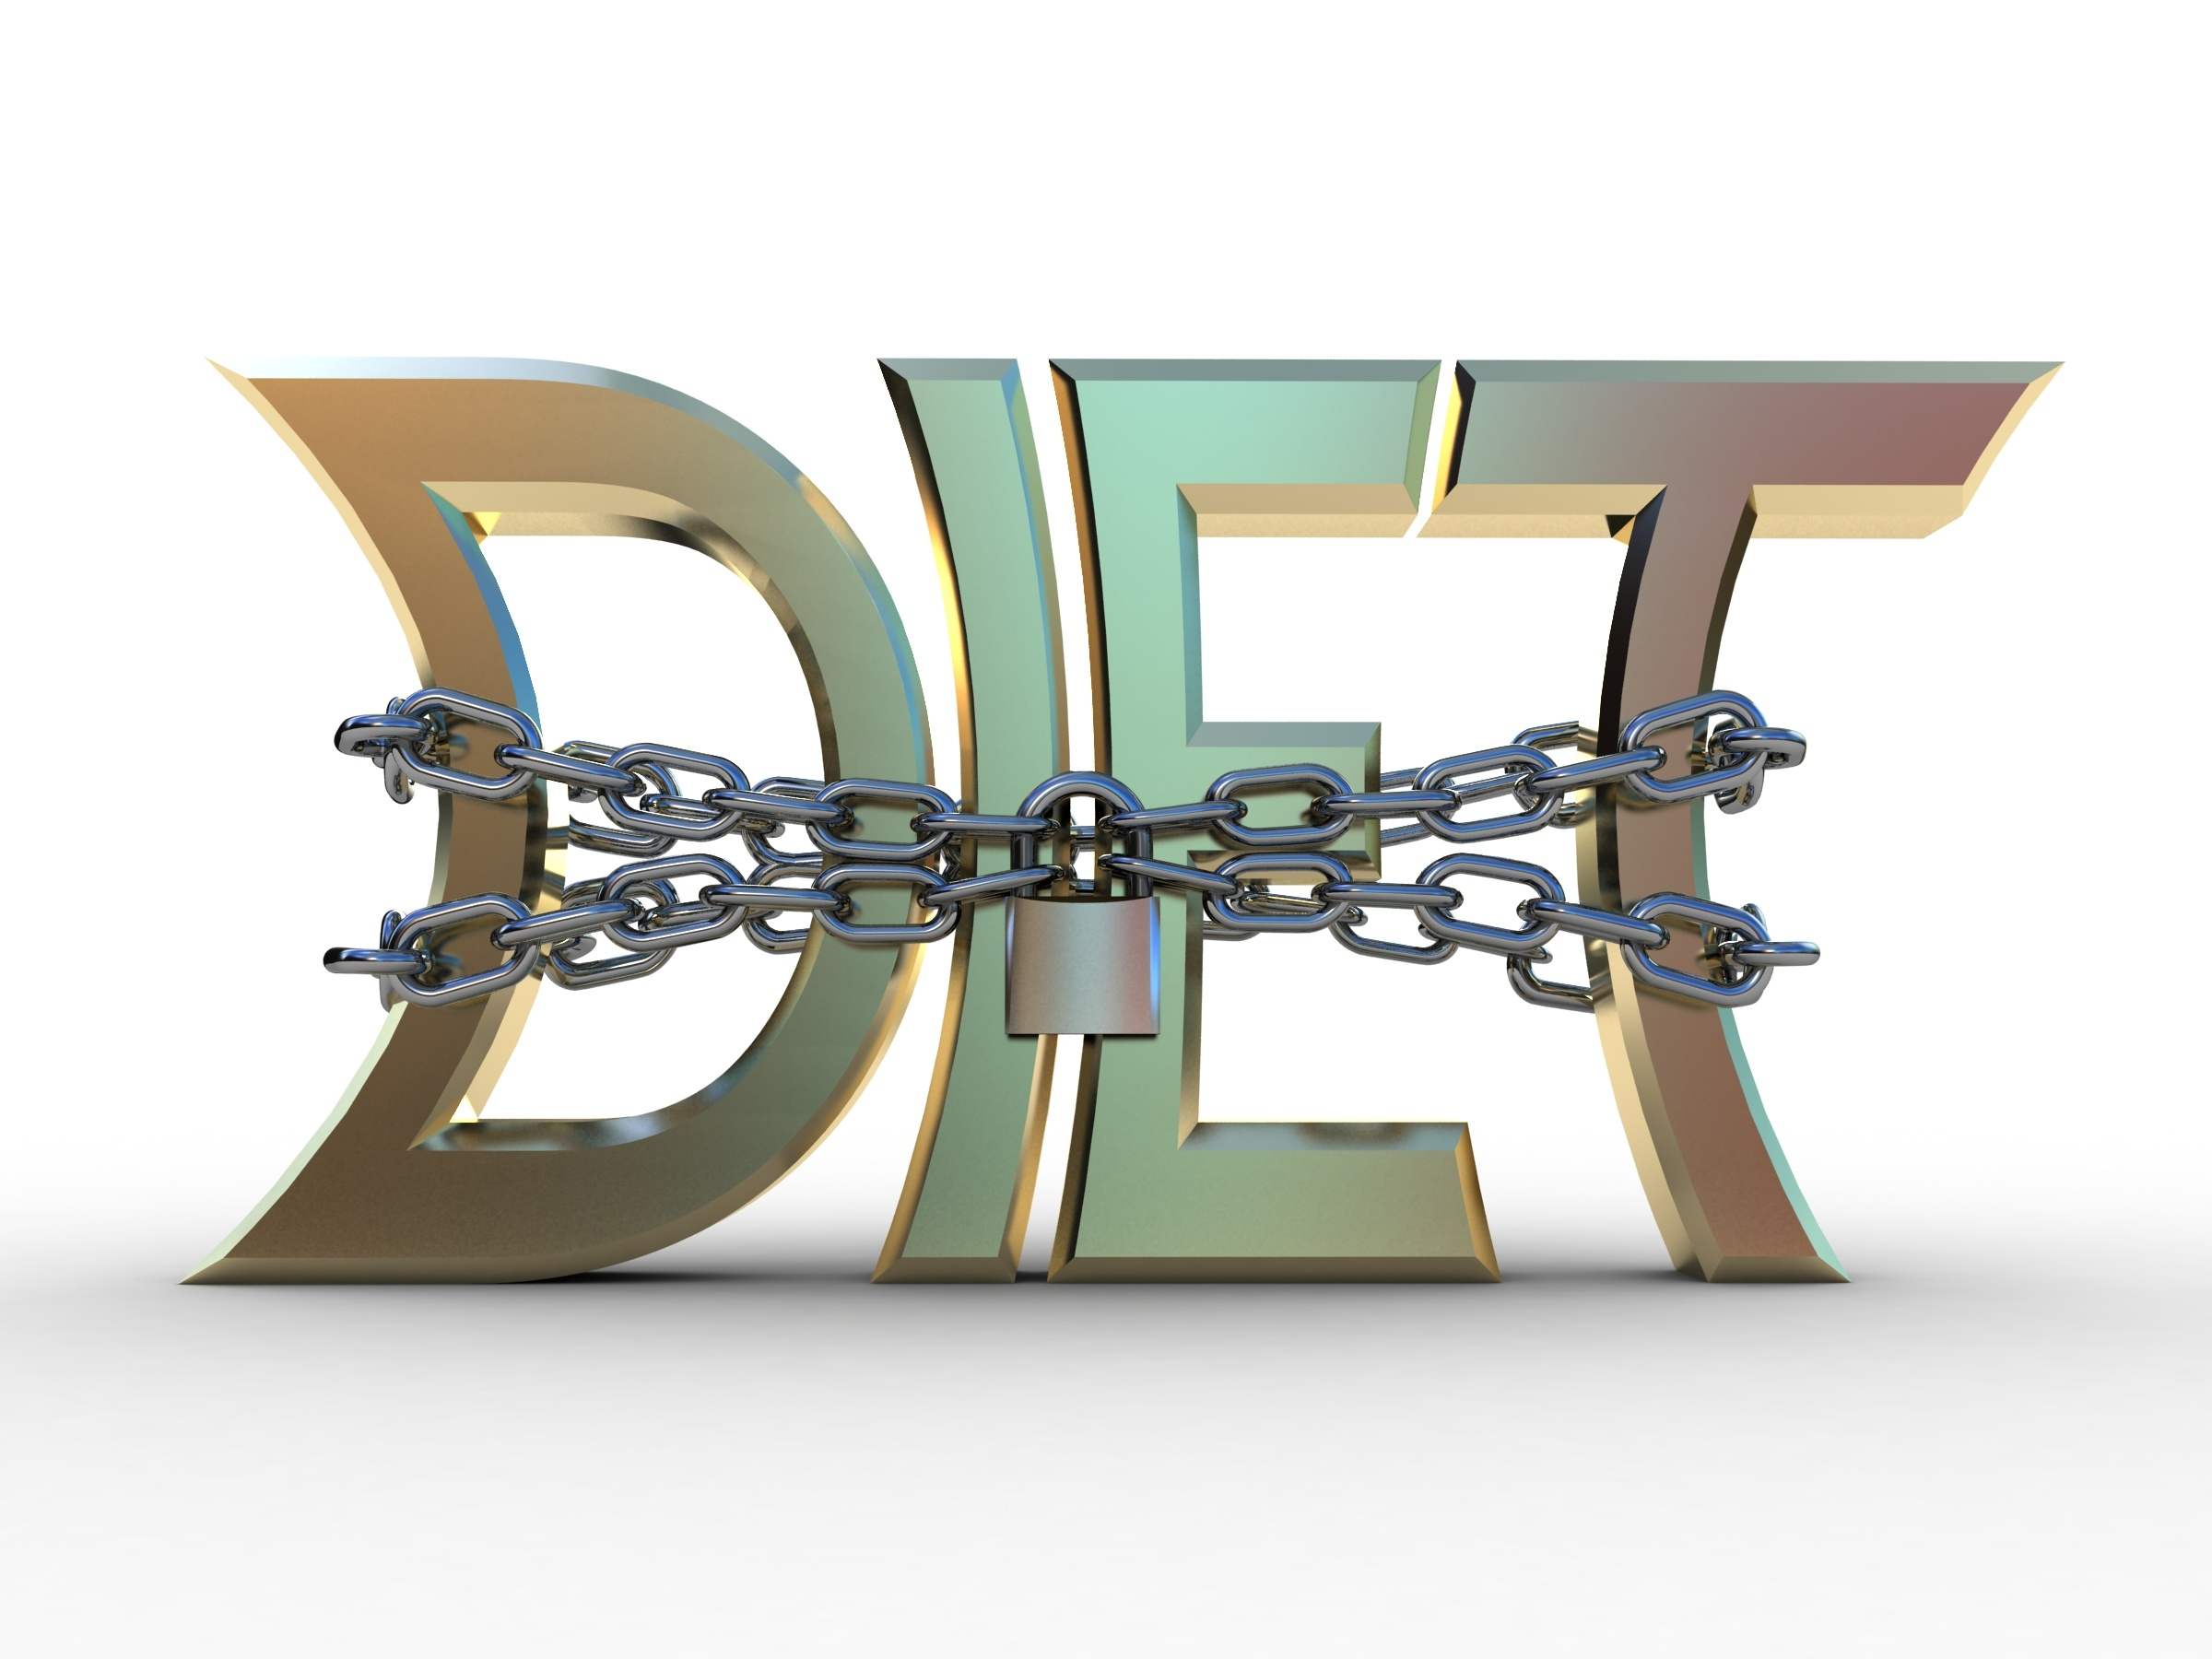 Volume letters a diet and a chain with the lock